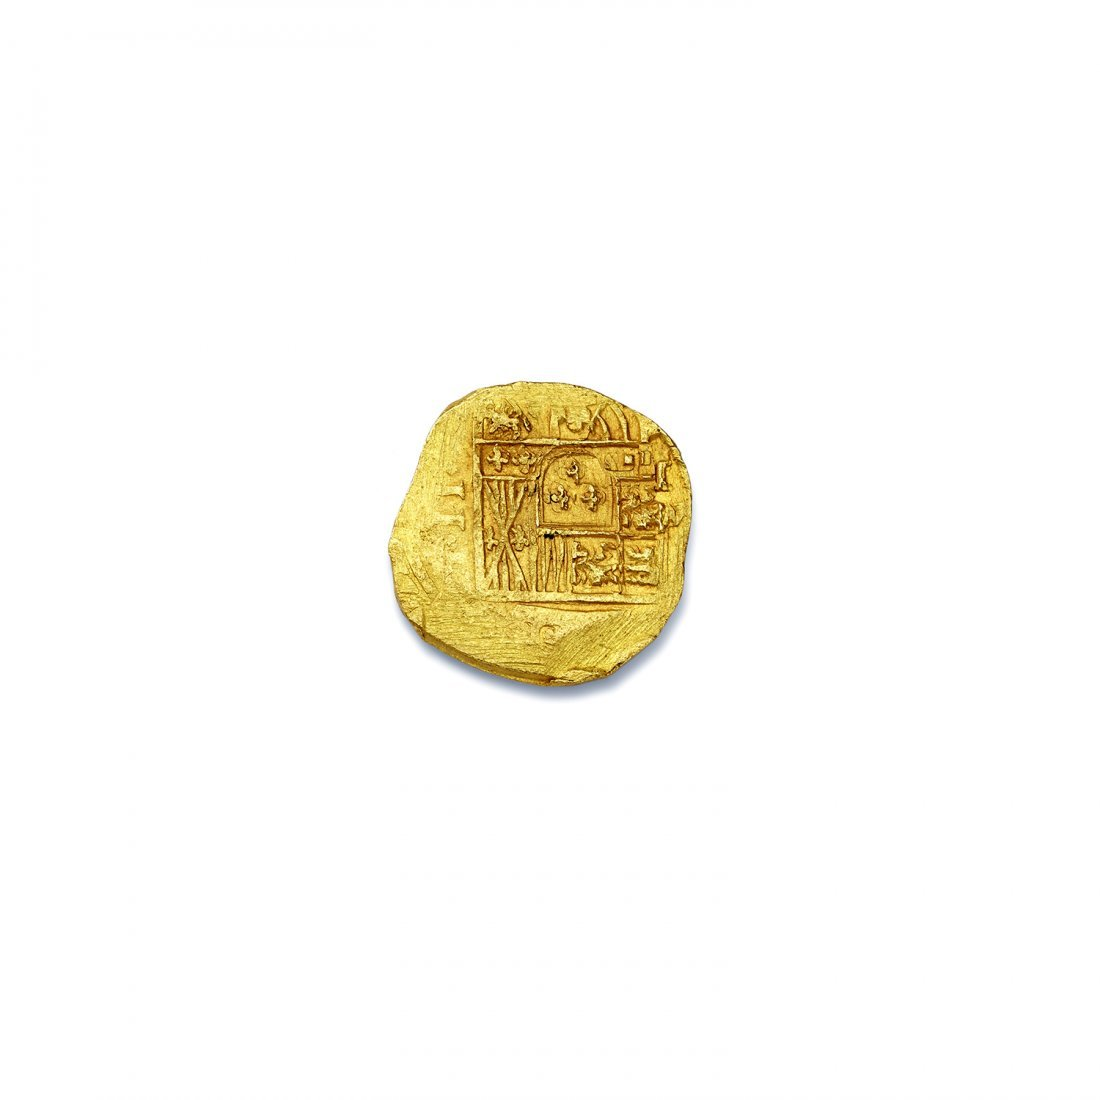 1715 Fleet Spanish Doubloon